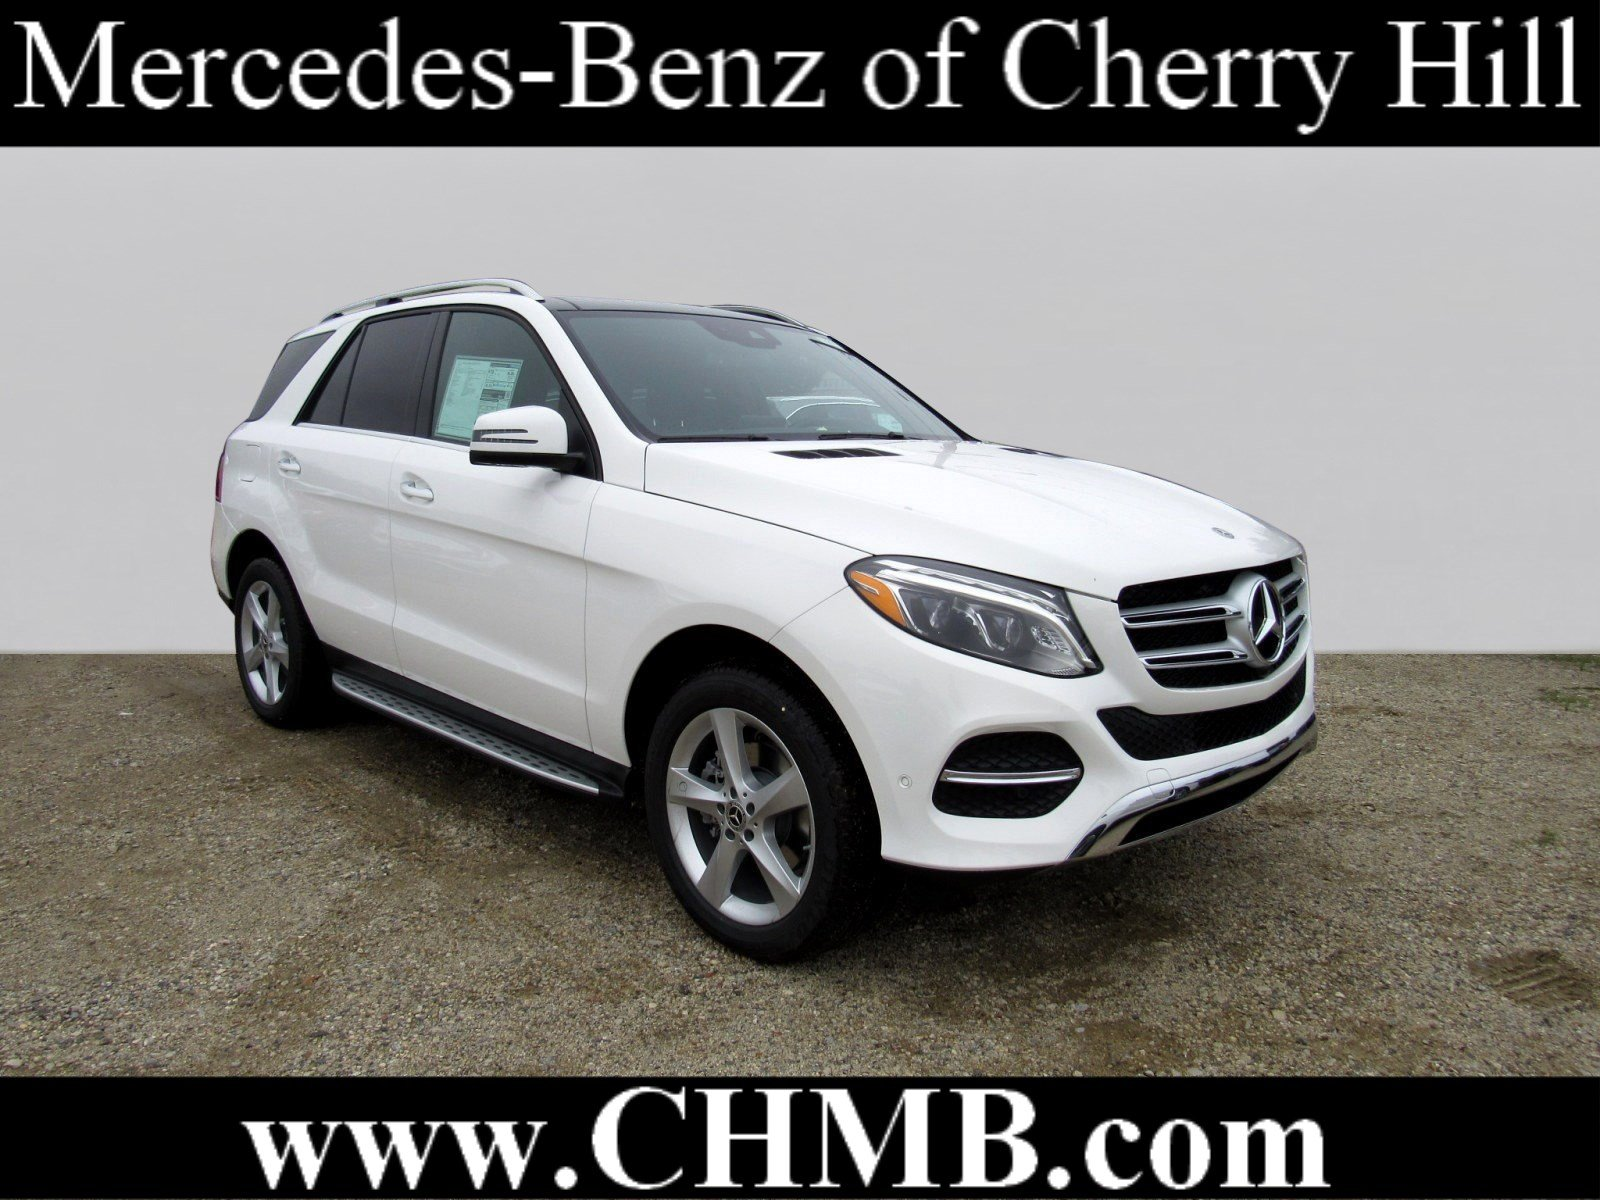 New 2018 Mercedes Benz GLE GLE 350 Sport Utility in Cherry Hill